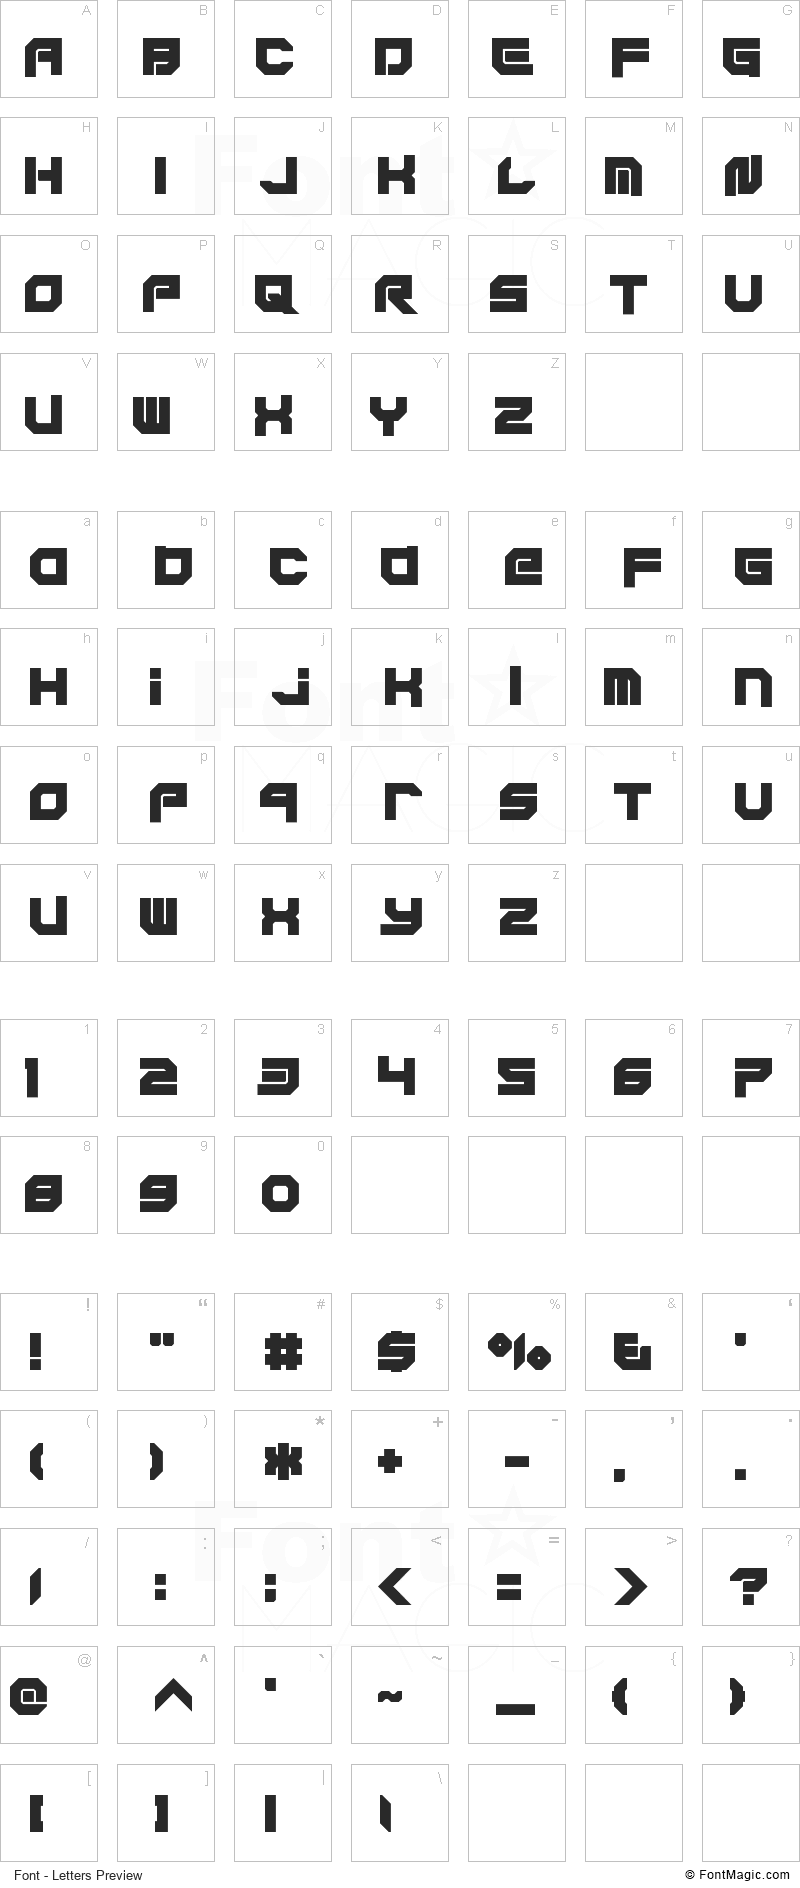 Xodohtro-Nu Font - All Latters Preview Chart